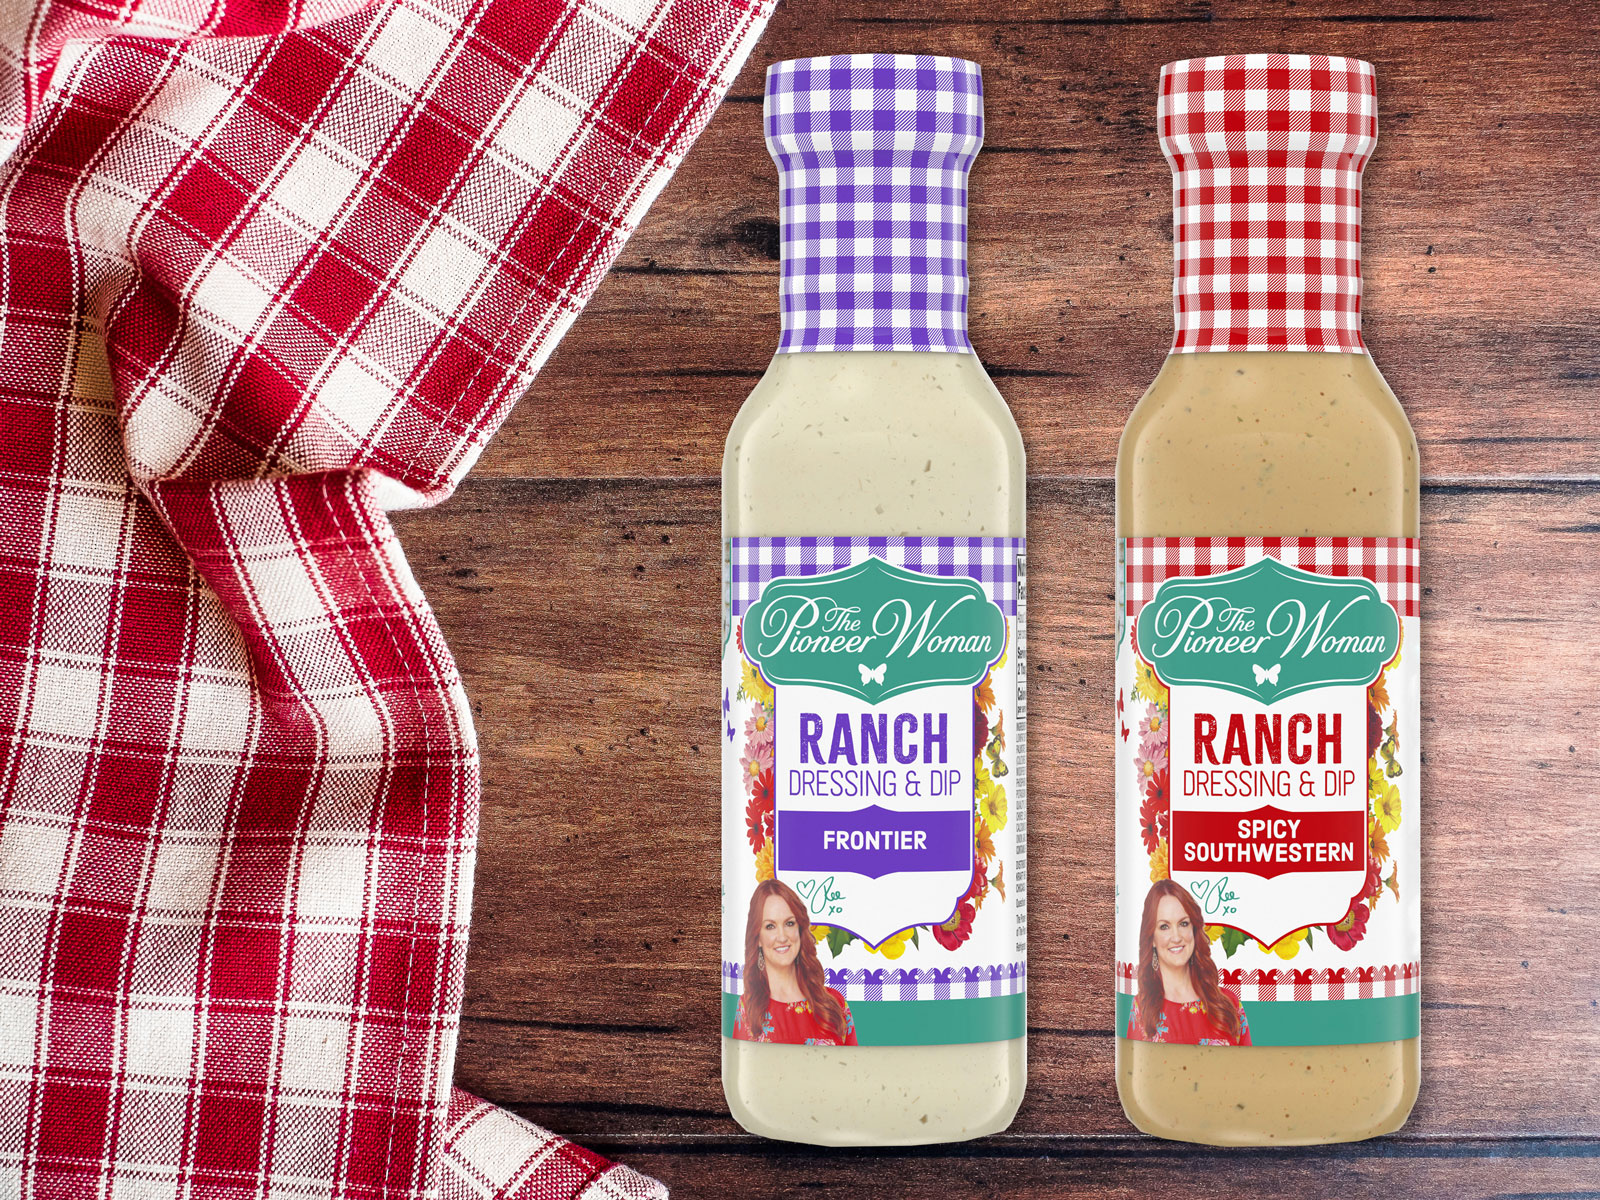 We Tried Ree Drummond's Ranch Dressing